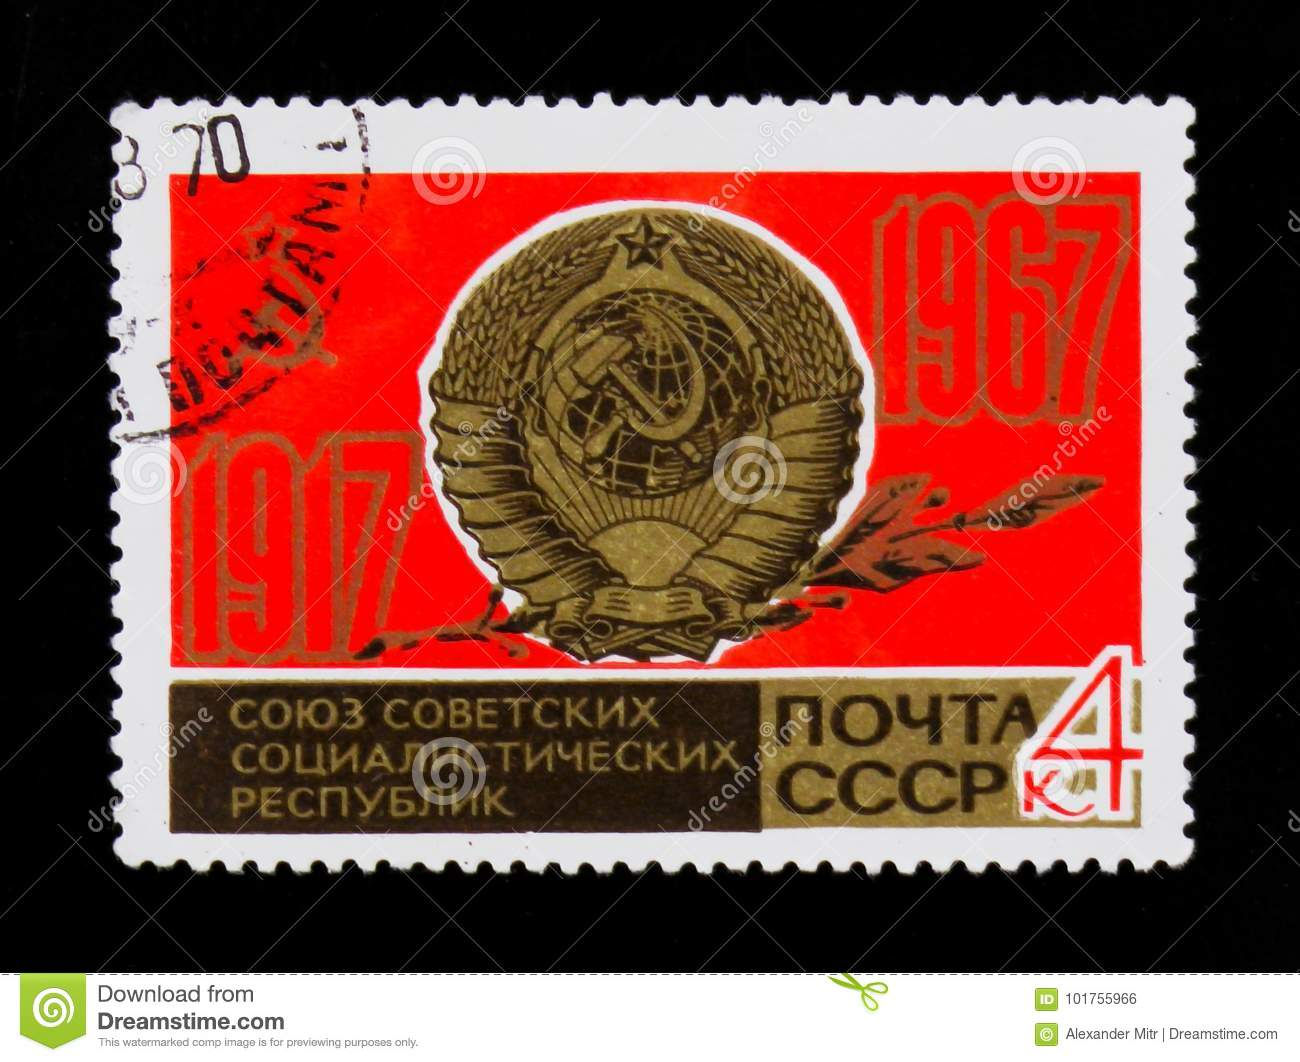 Coat of arms of USSR, 50th anniversary, circa 1967